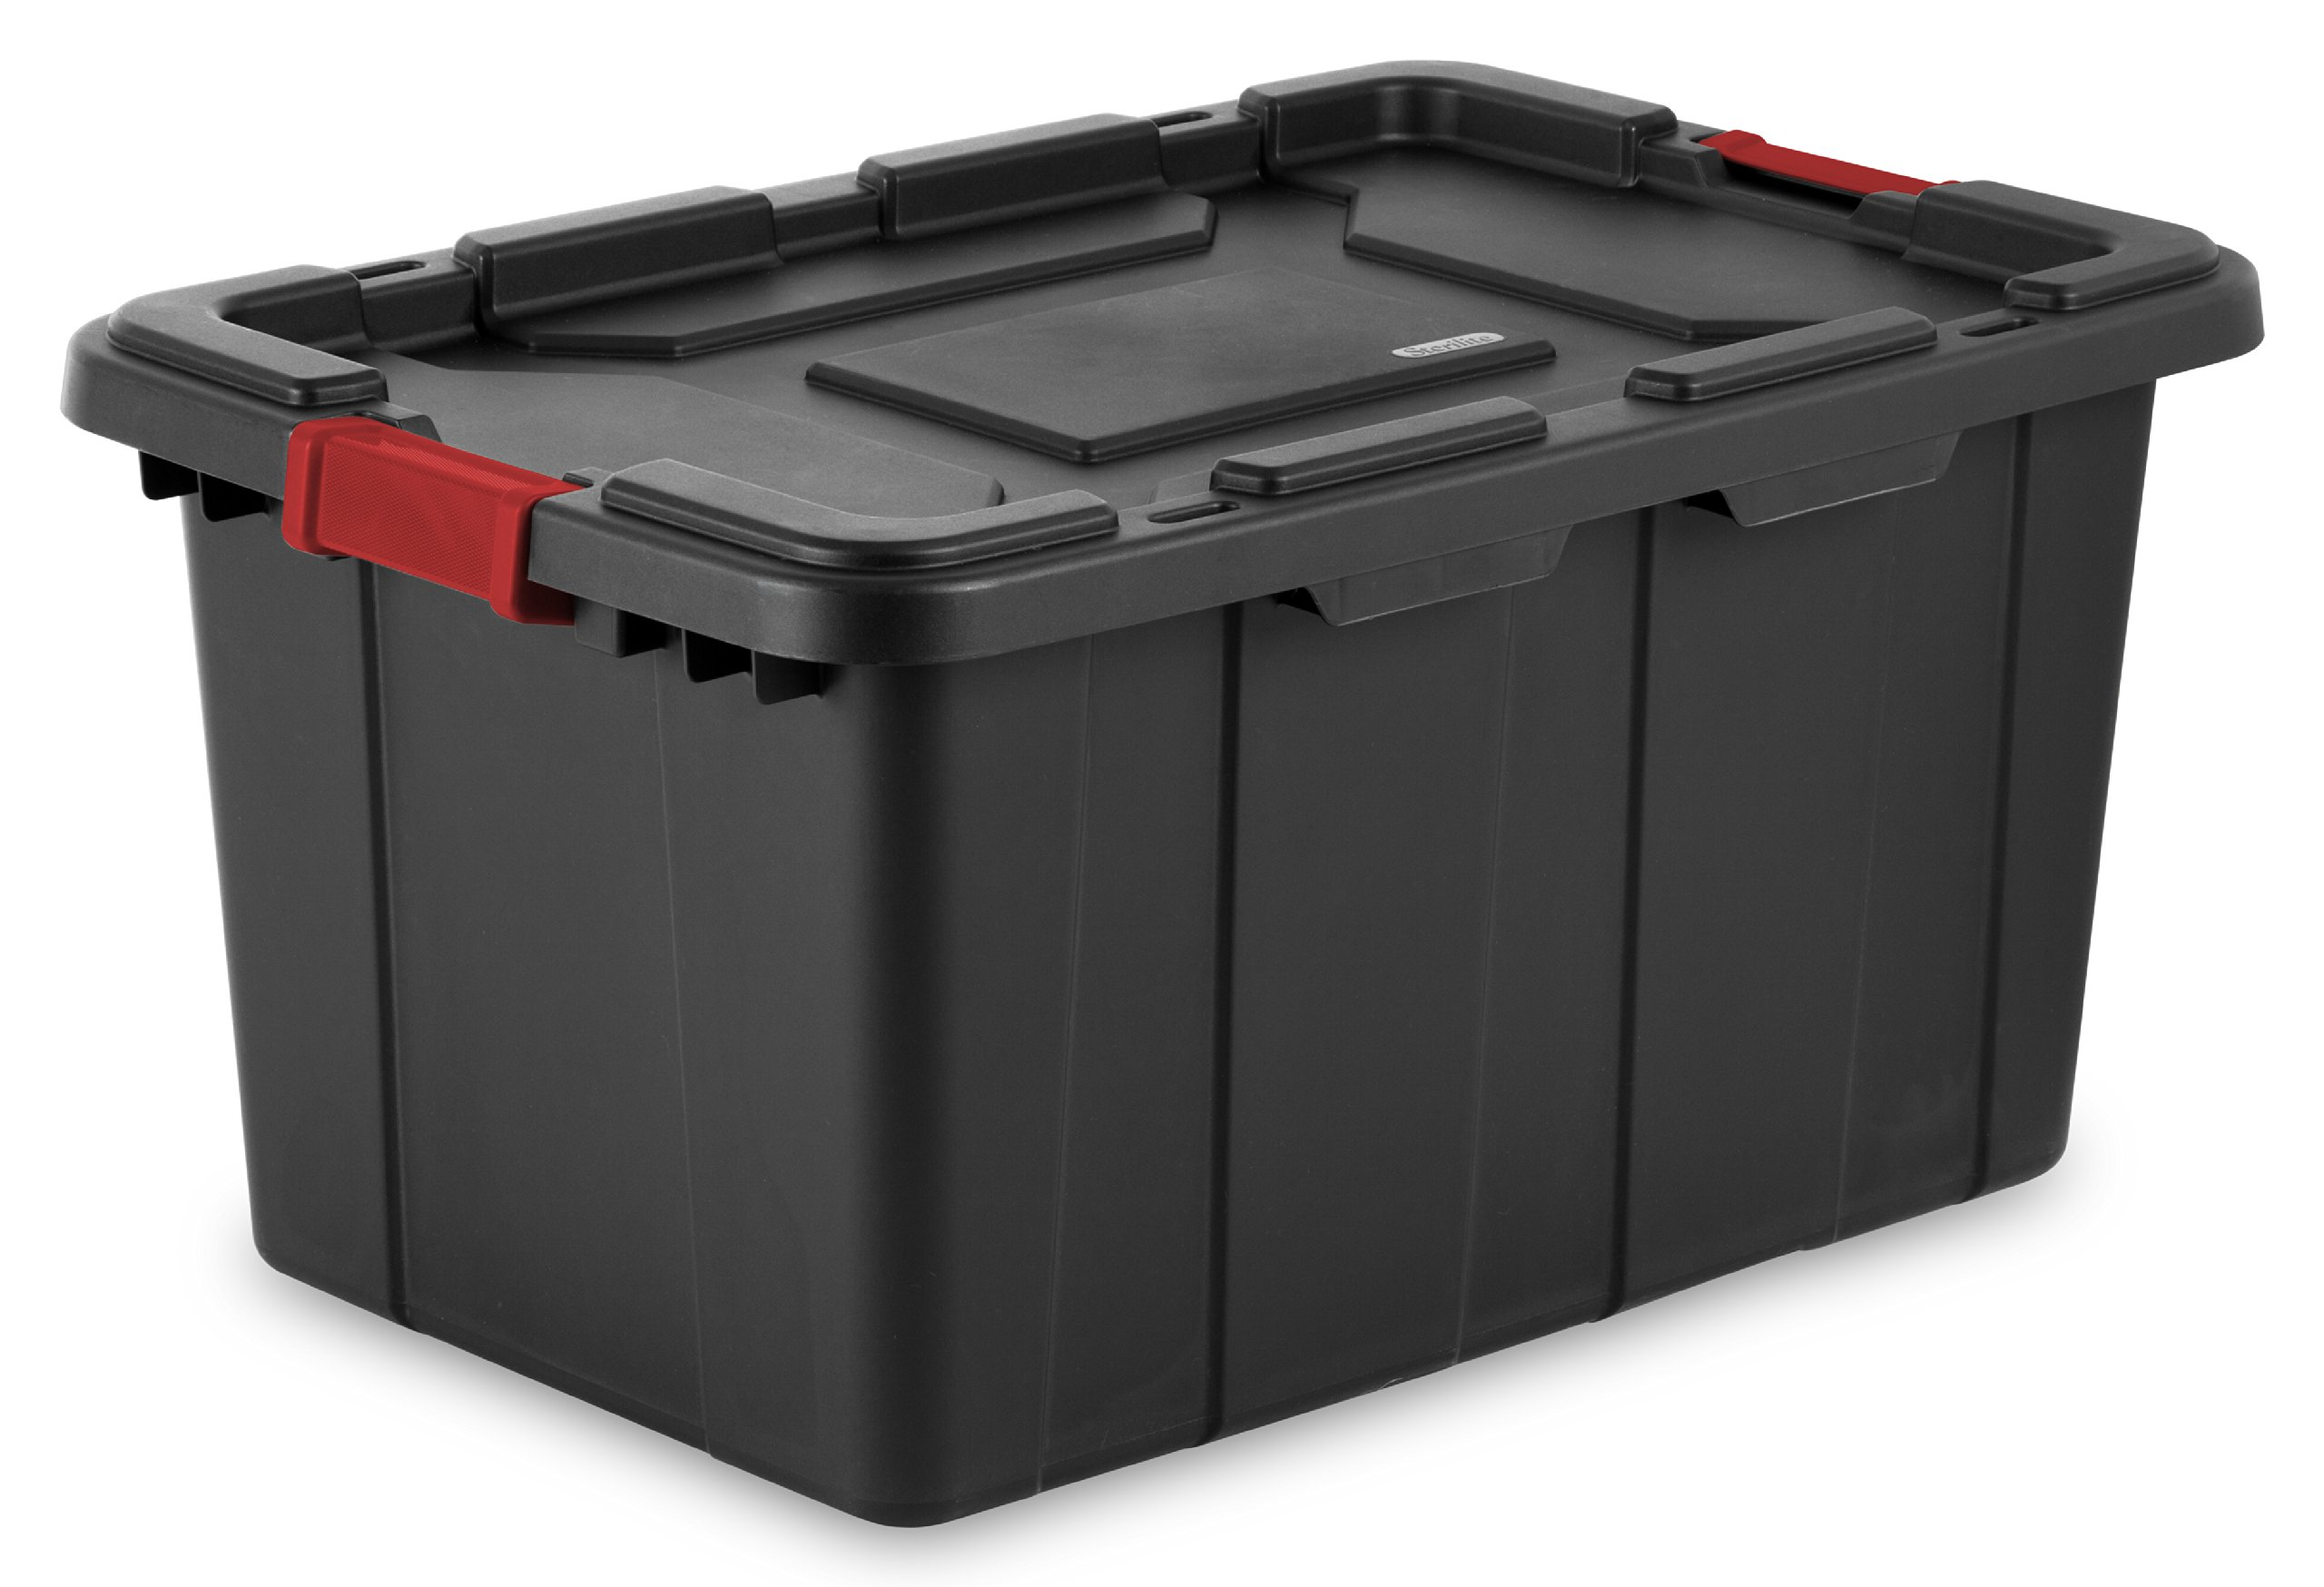 STERILITE 14669004 27 Gallon/102 Liter Industrial Tote, Black Lid & Base w/Racer Red Latches, 4-Pack